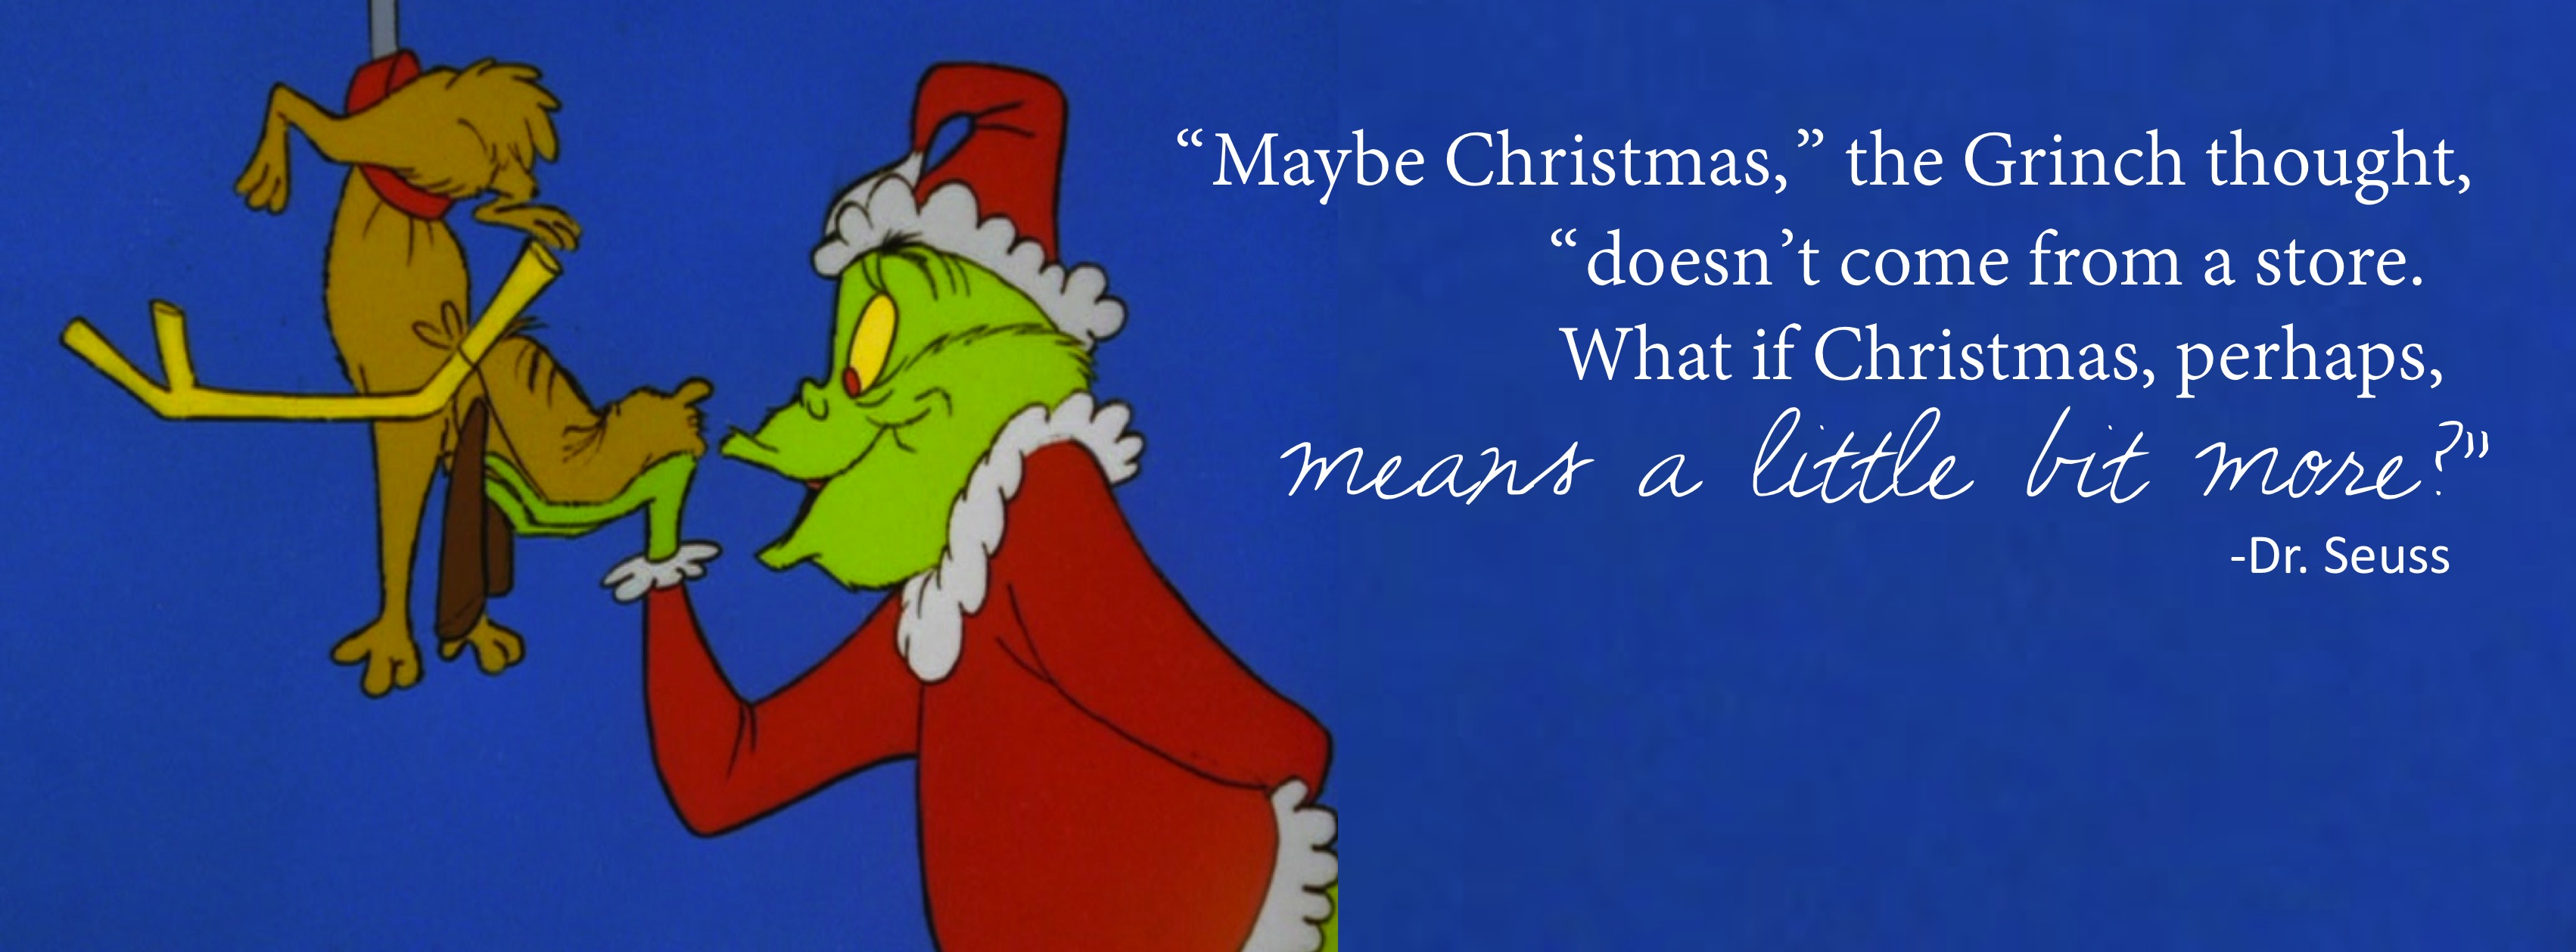 grinch christmas facebook covers - photo #1